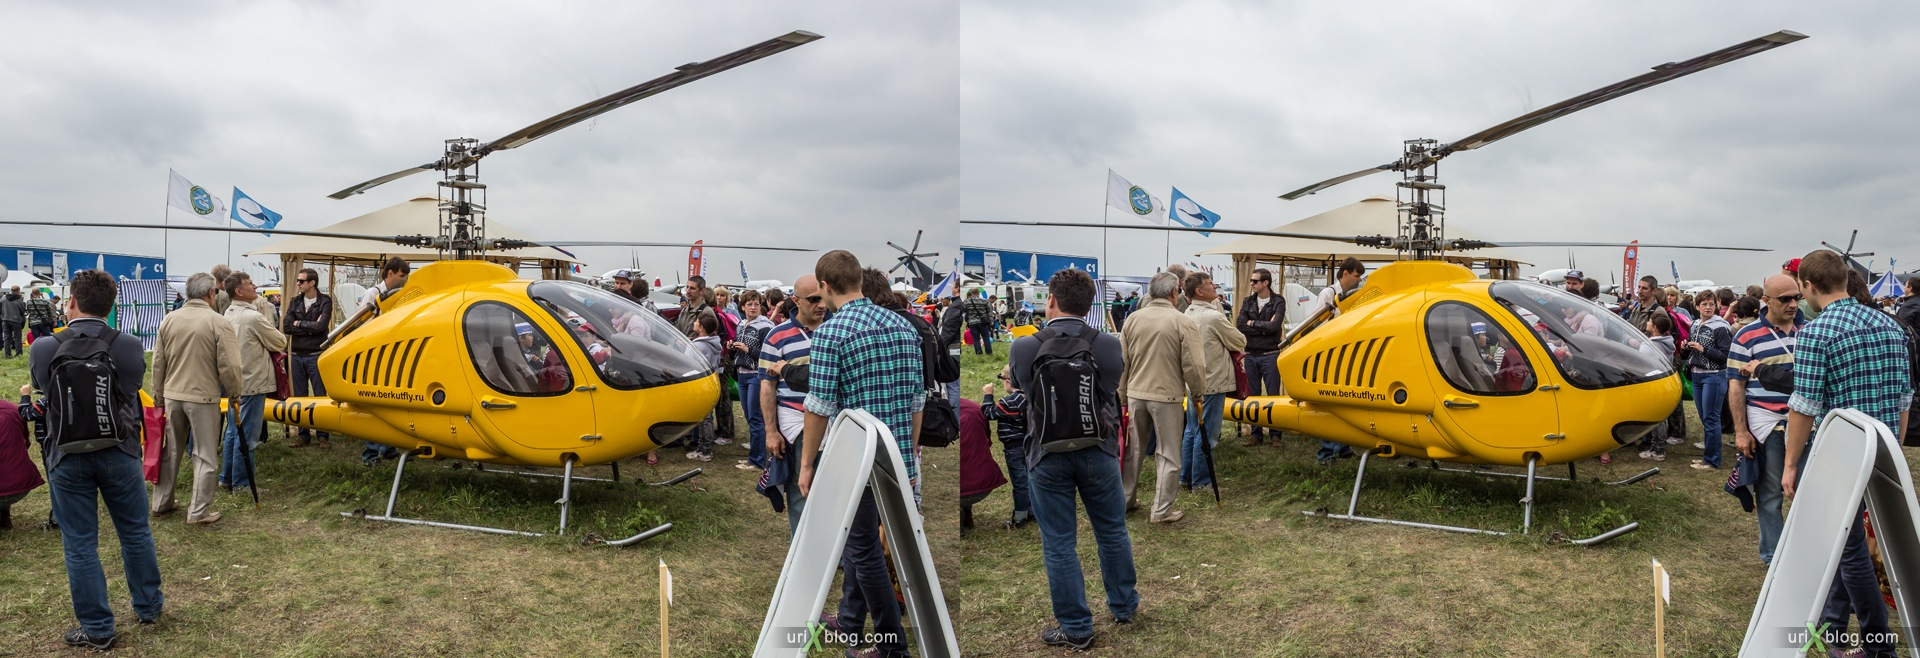 2013, Berkut VL, MAKS, International Aviation and Space Salon, Russia, Ramenskoye airfield, airplane, 3D, stereo pair, cross-eyed, crossview, cross view stereo pair, stereoscopic